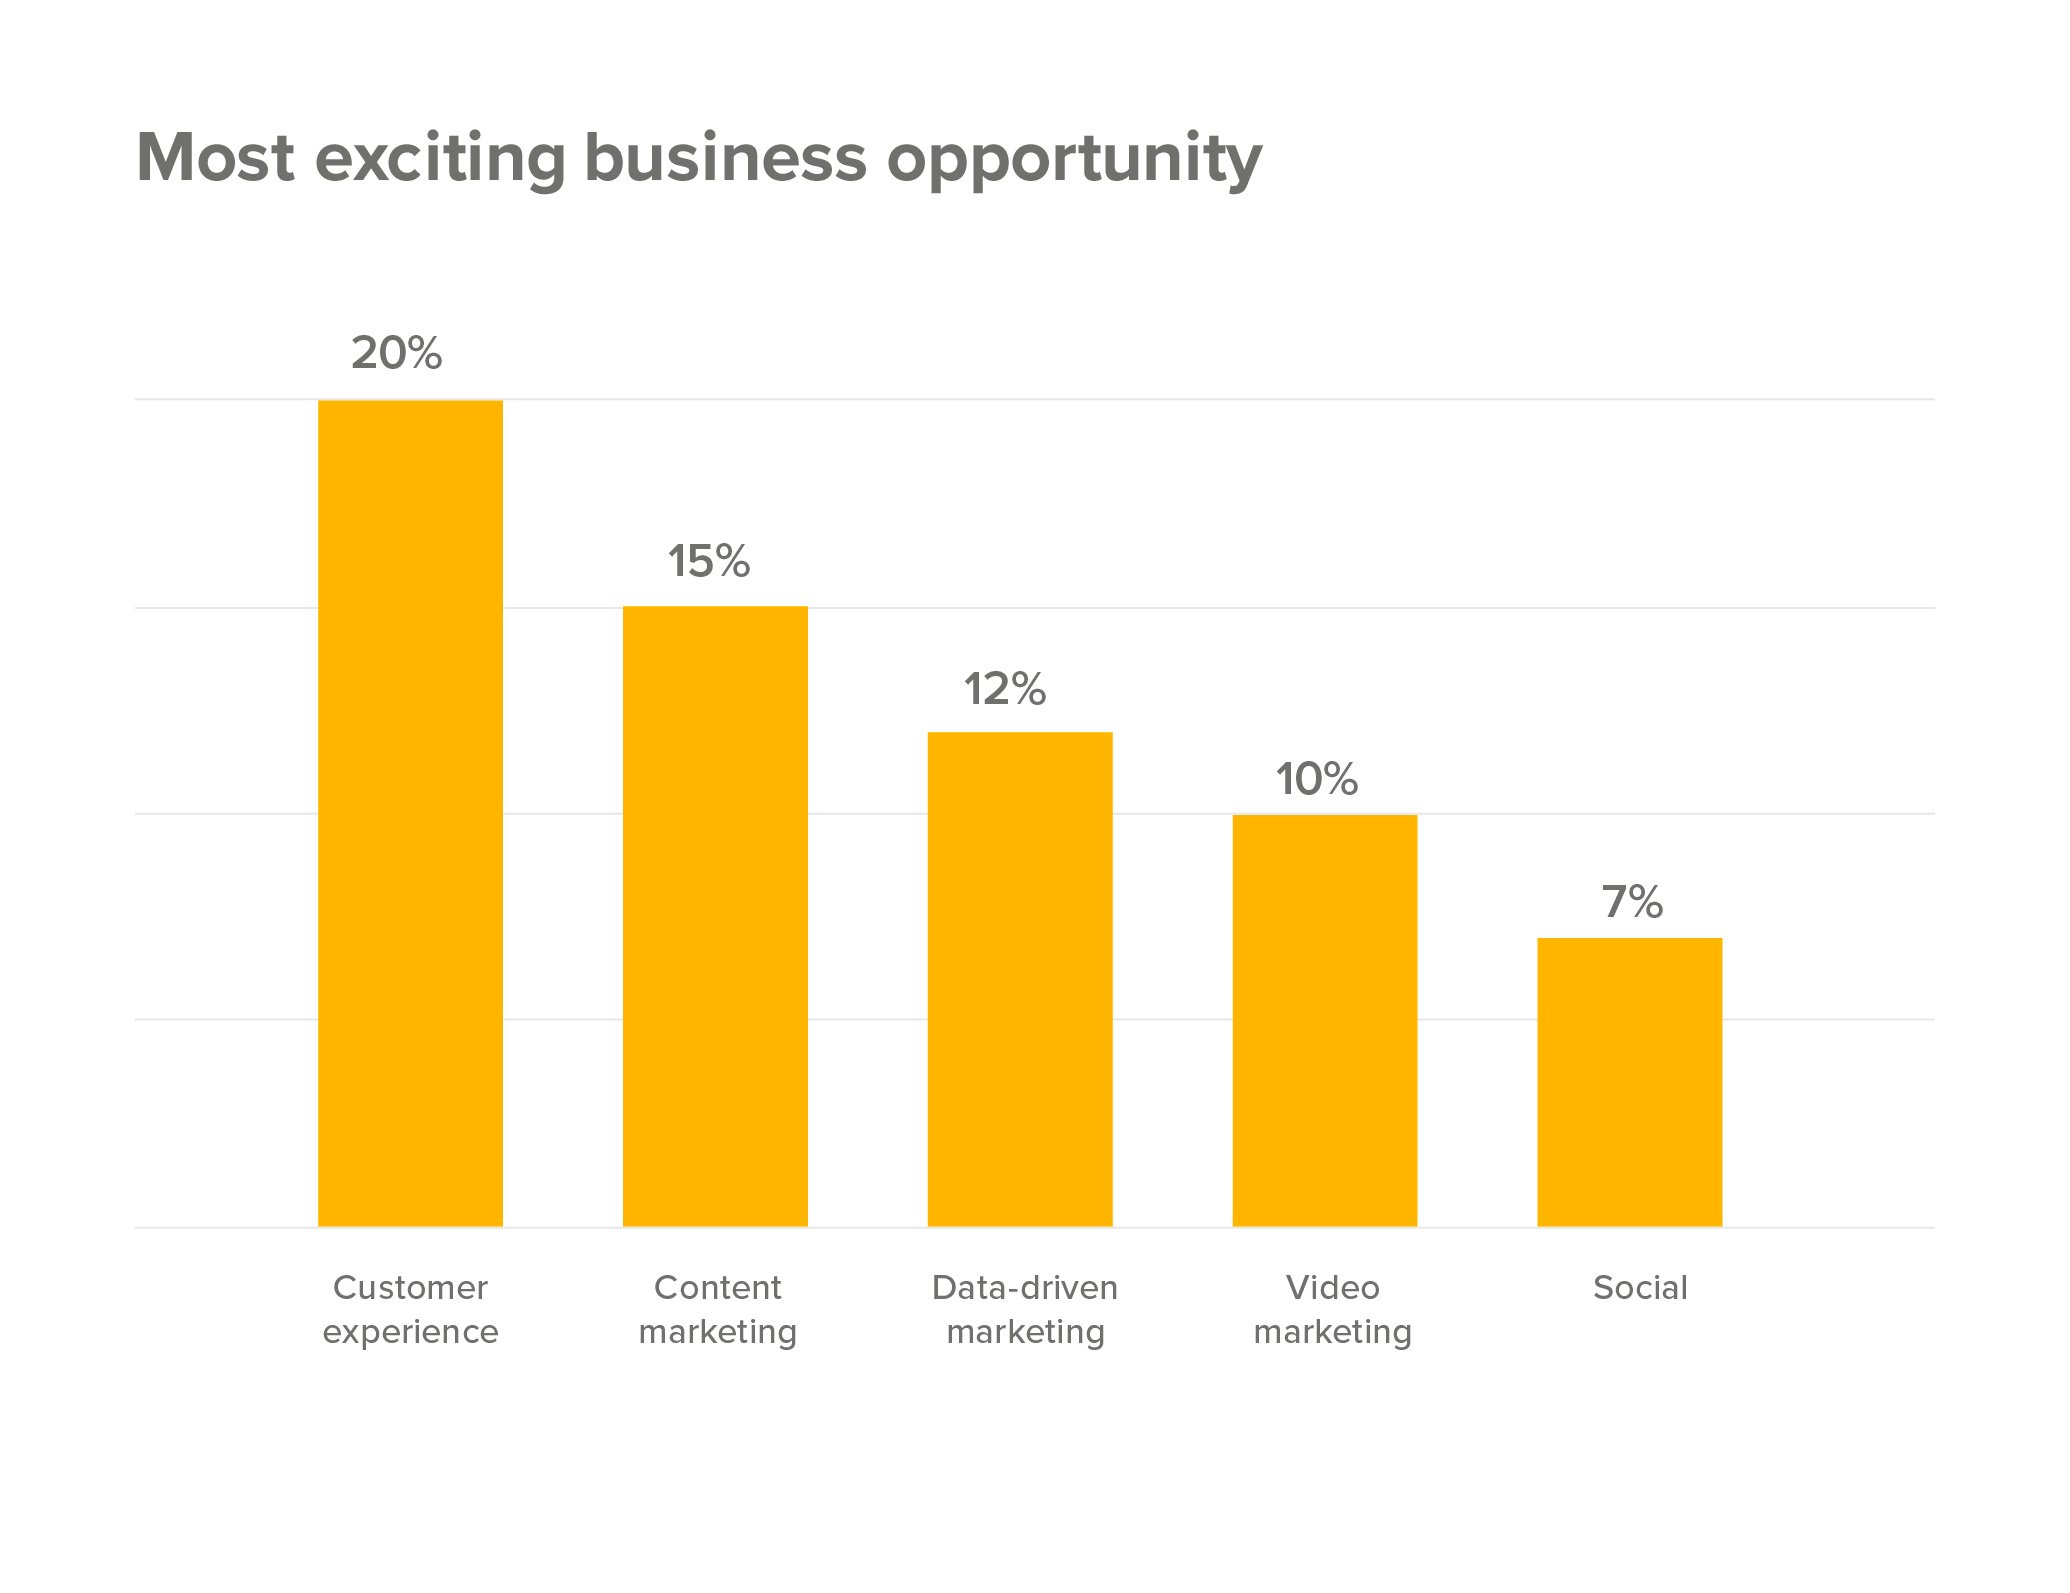 Most exciting business opportunity is customer experience